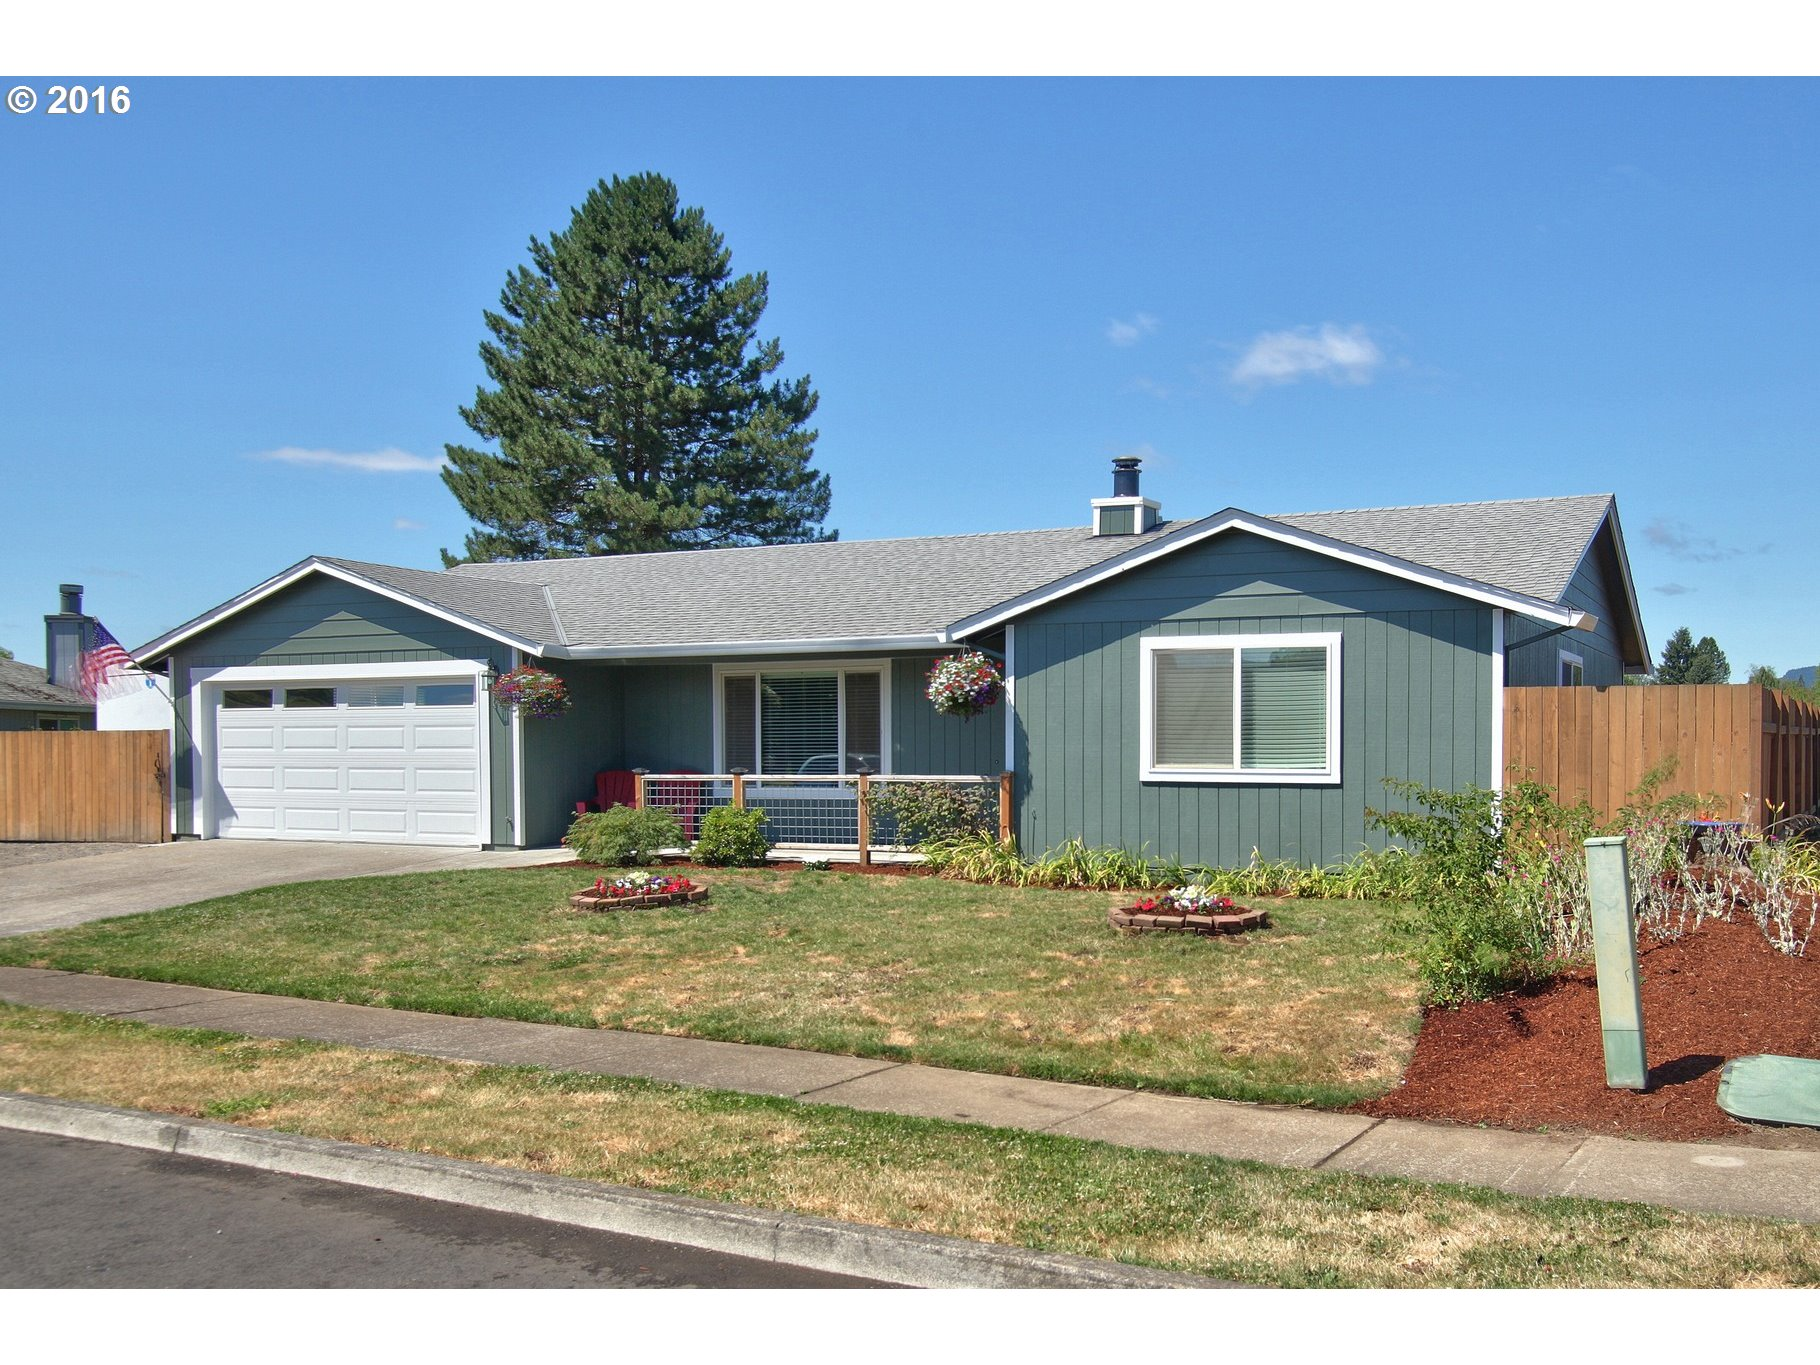 $285,000 - 3Br/2Ba -  for Sale in Tarrybrooke, Cornelius